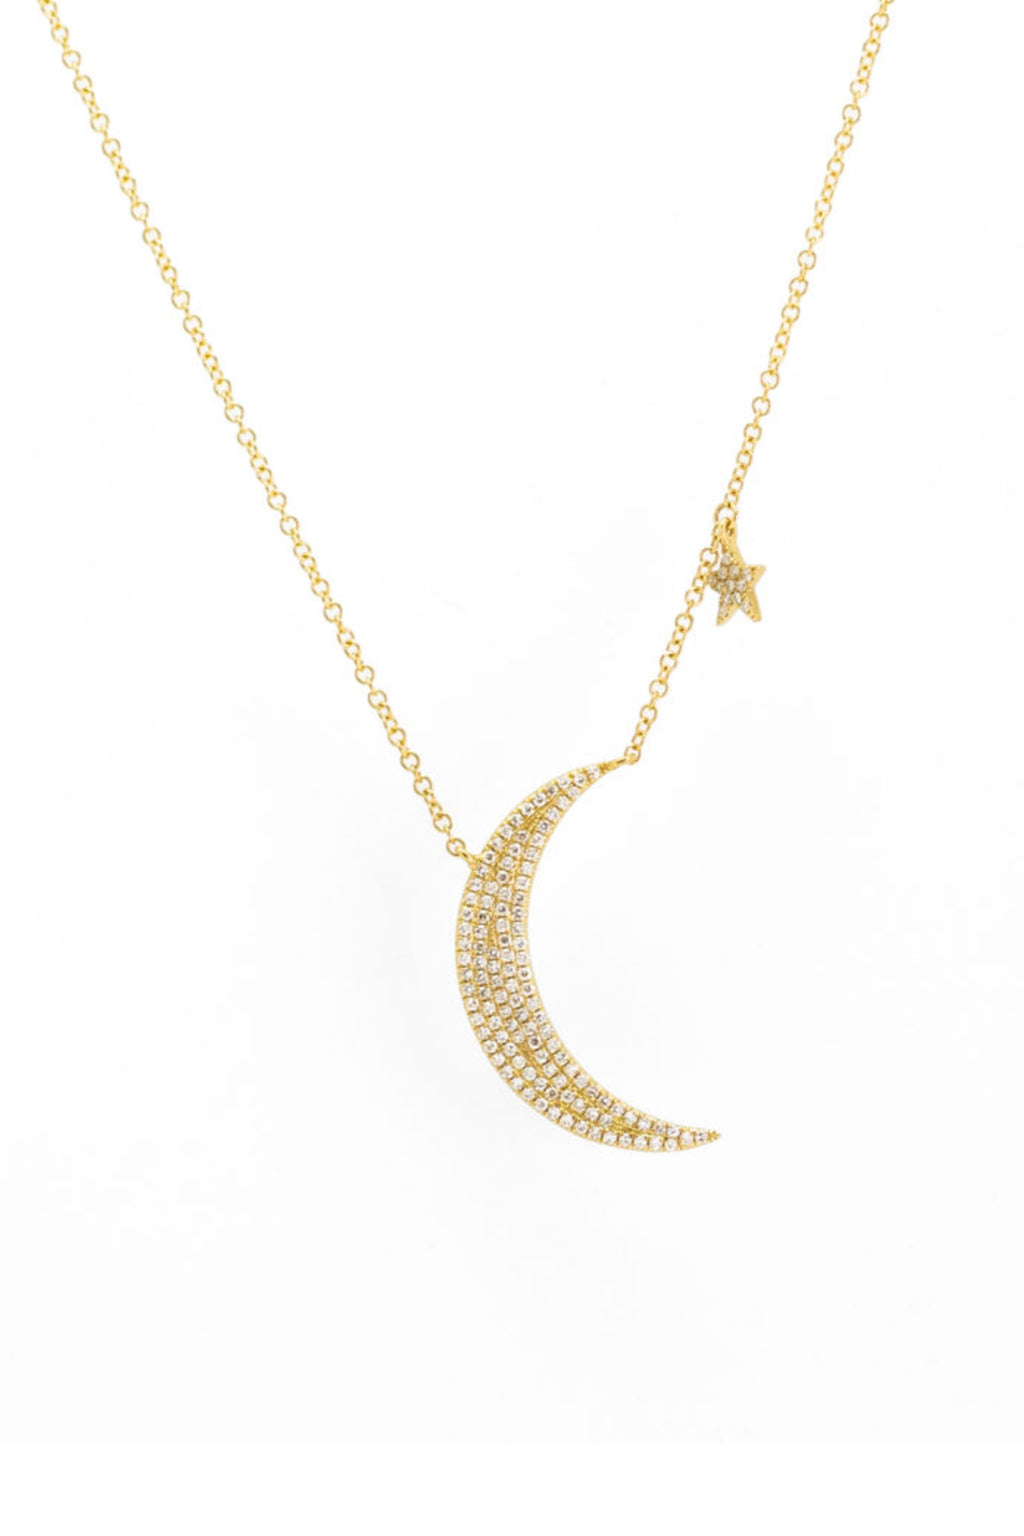 Pade Vavra 14K Yellow Gold Diamond Moon And Star Necklace